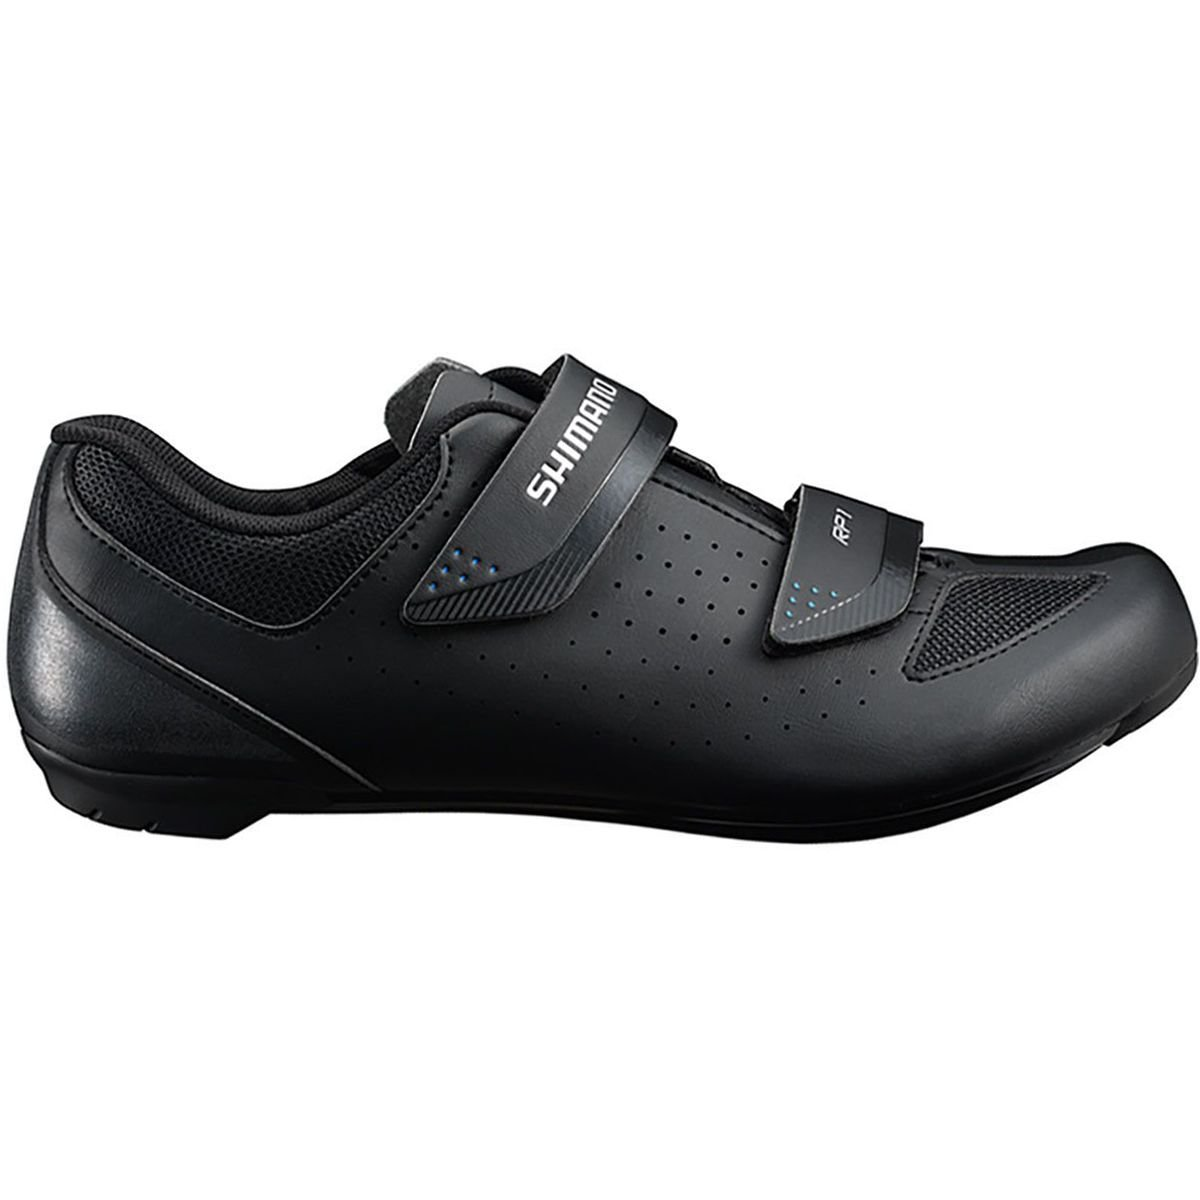 Shimano SH-RP1 Cycling Shoe - Men's Black, 45.0